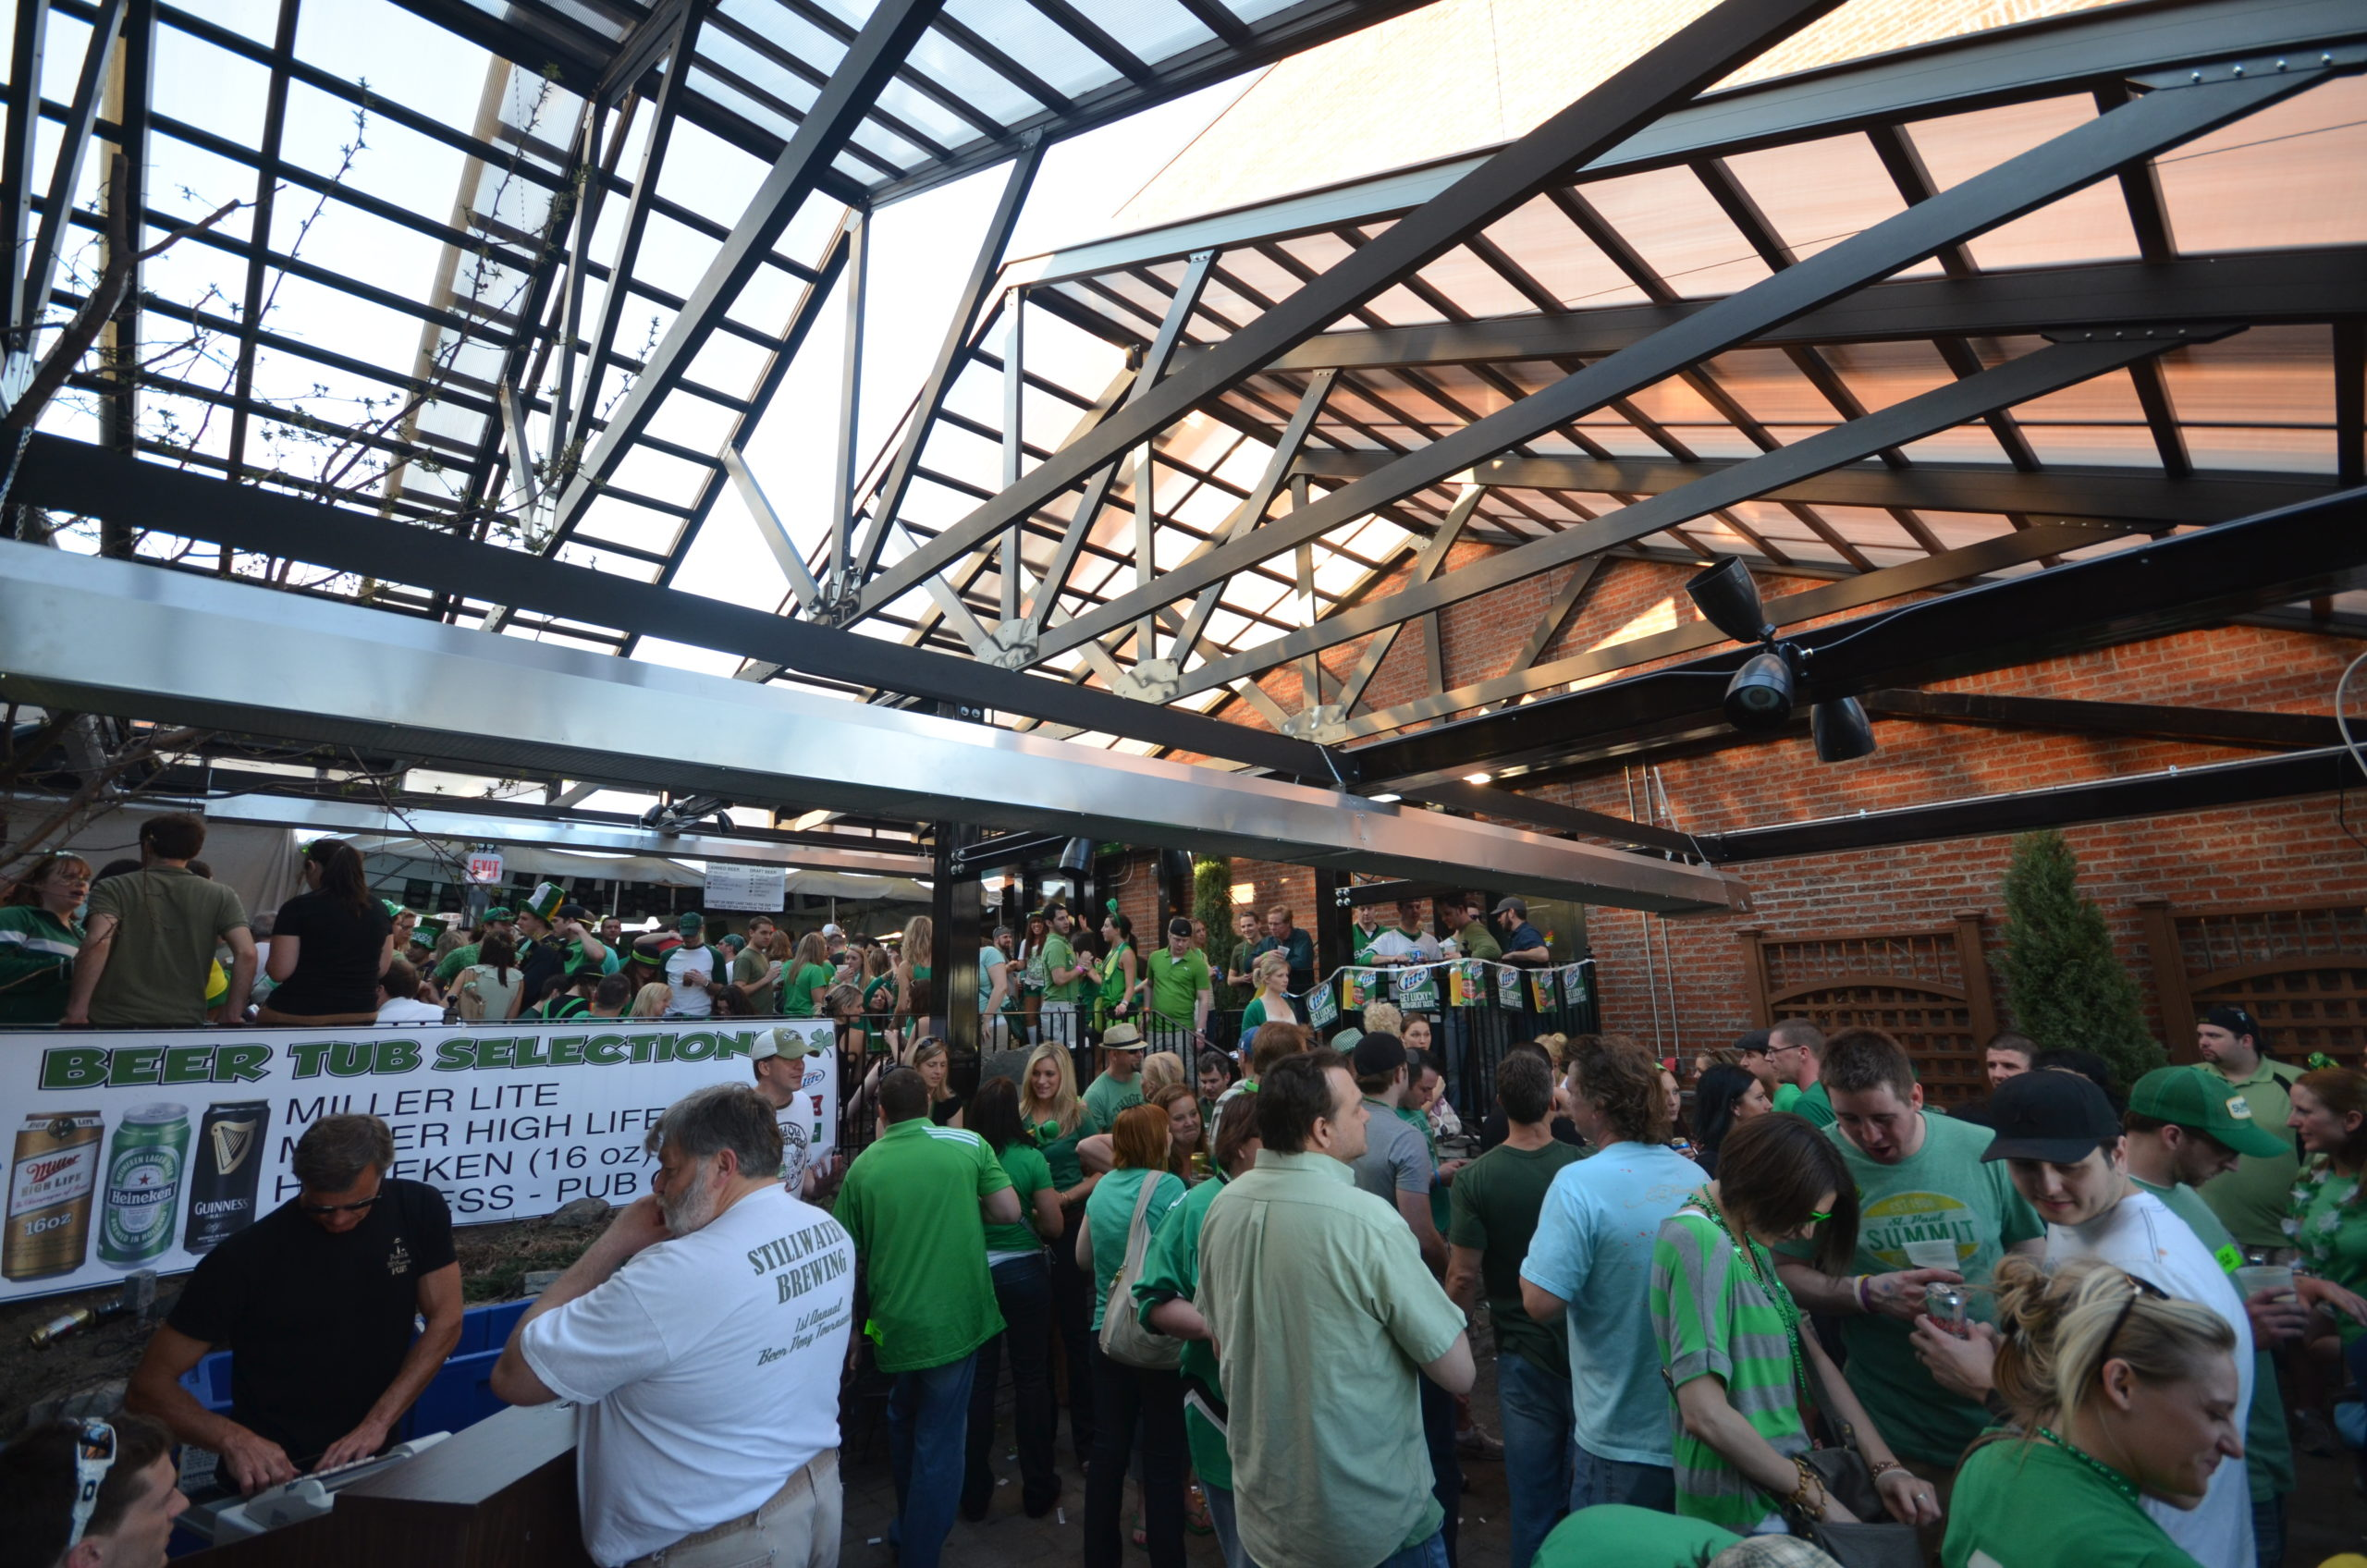 Saint Patrick's Day on a patio with retractable roof